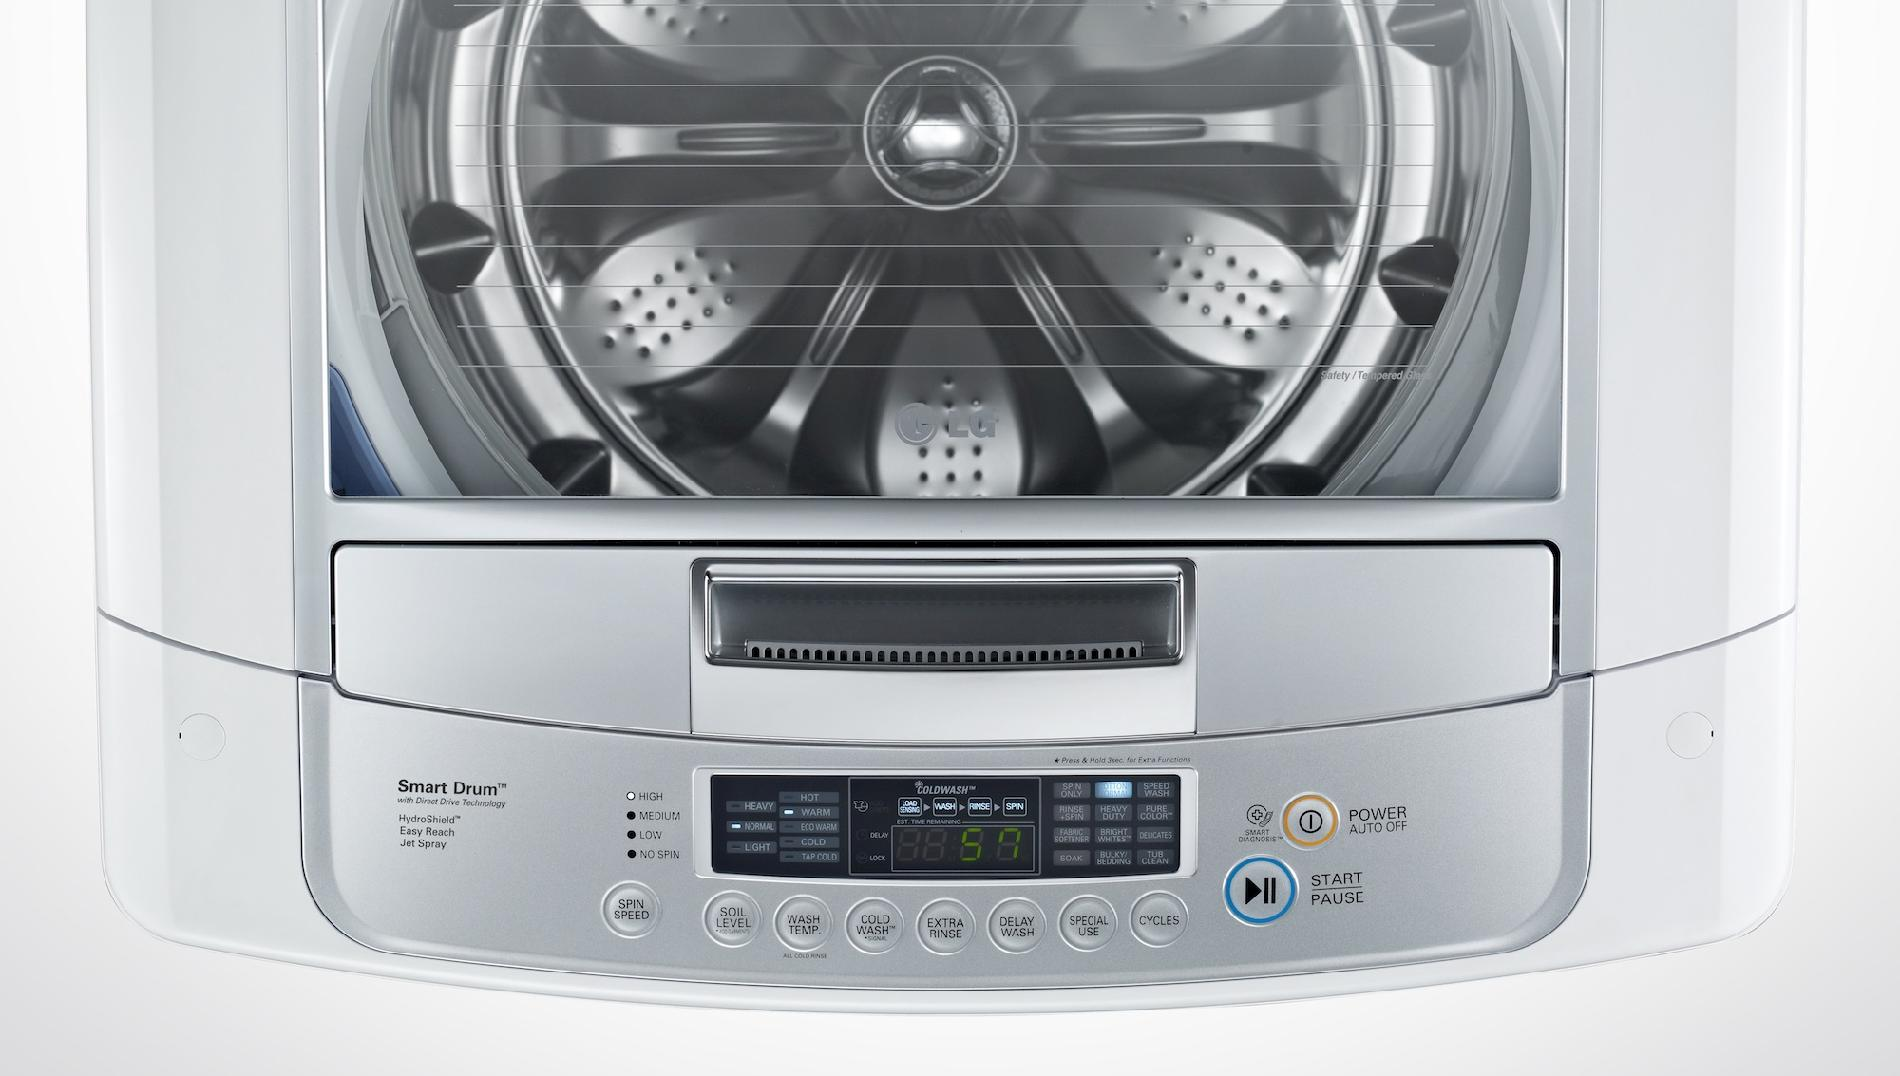 LG 4.5 cu. ft. High-Efficiency Top-Load Washer - White